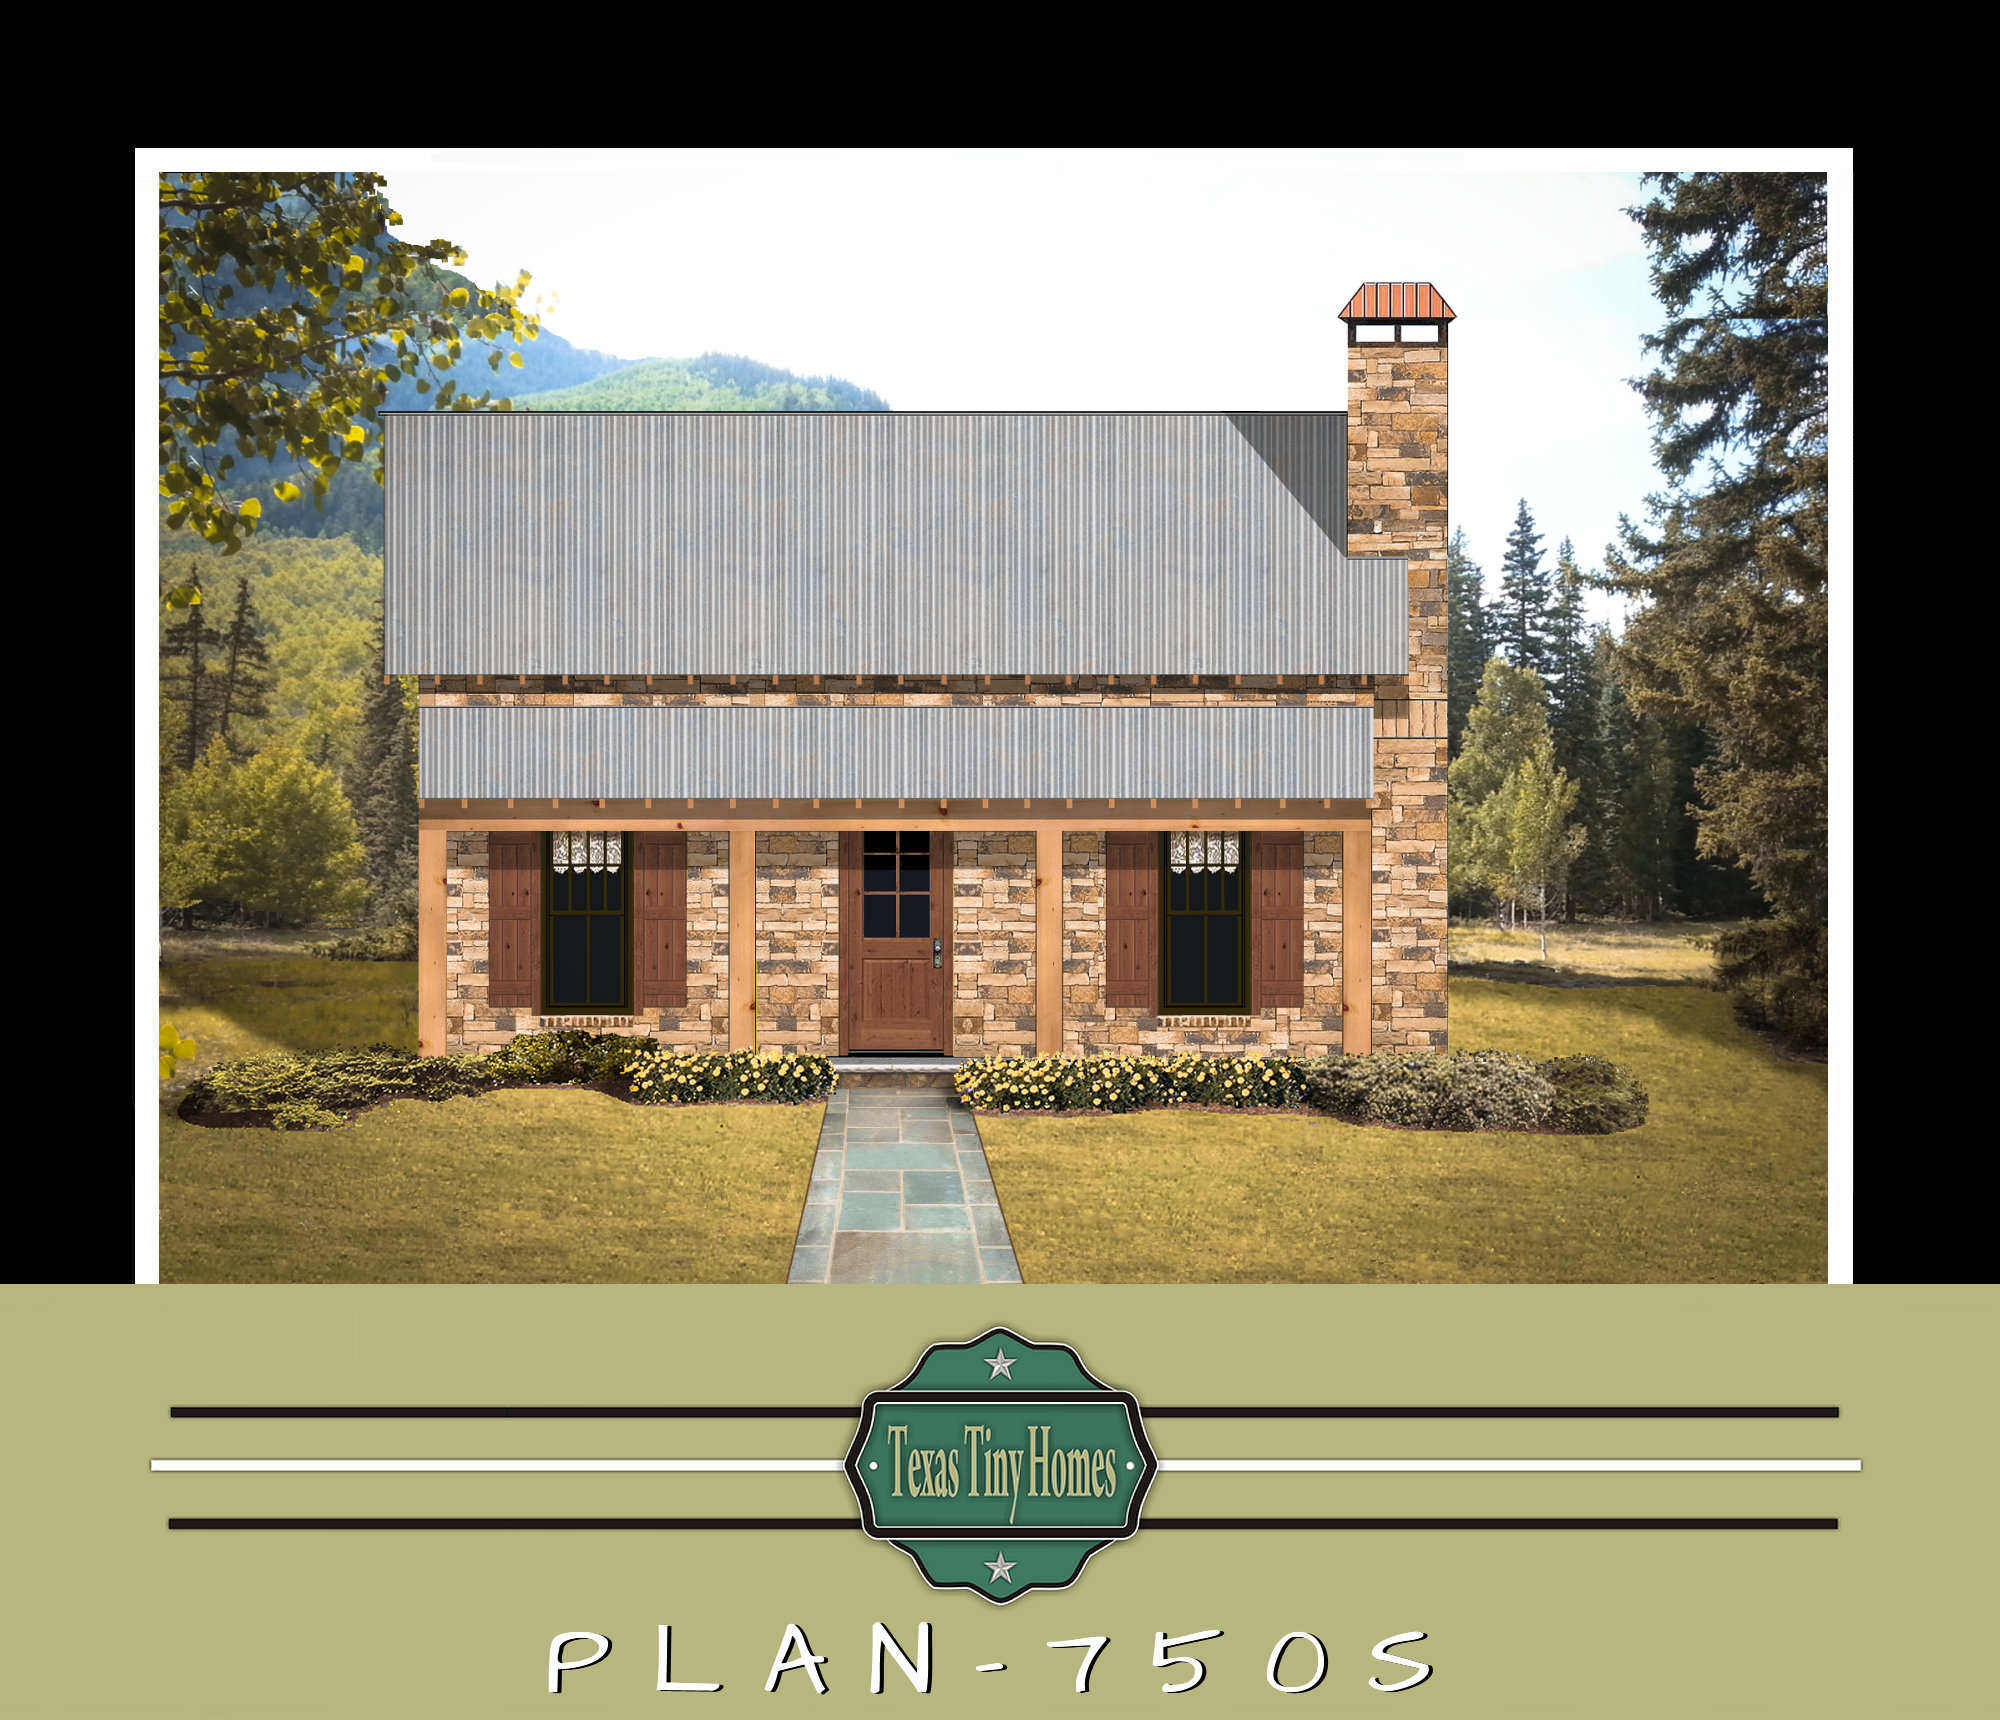 Texas Tiny Homes Plan 750